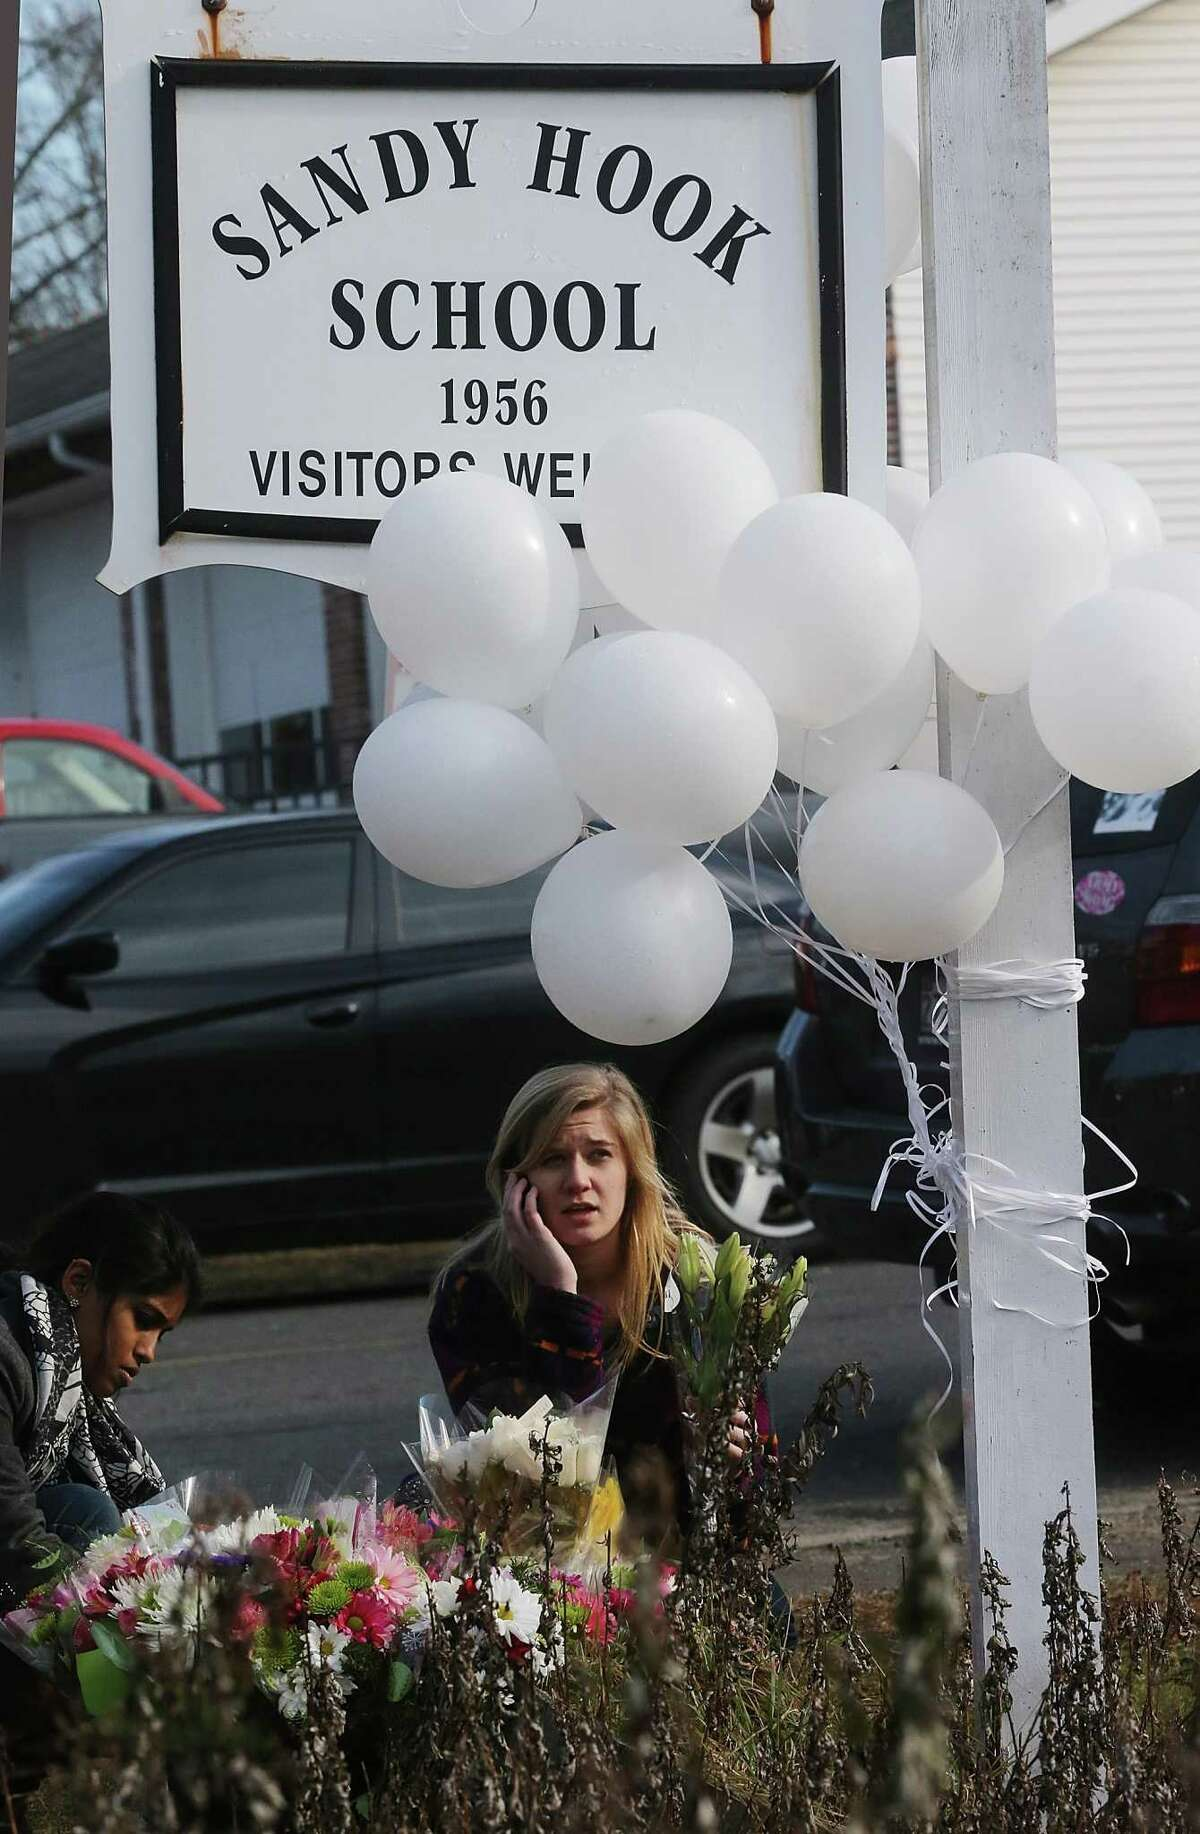 FILE - NOVEMBER 25, 2013: A report will be released today by Connecticut State Attorney Stephen Sedensky III summarizing the December 14, 2012 Newtown school shooting that left 20 children and six women dead inside Sandy Hook Elementary School November 25, 2013. NEWTOWN, CT - DECEMBER 15: People gather at a makeshift memorial outside a firehouse which was used as a staging area for families following the mass shooting at Sandy Hook Elementary School on December 15, 2012 in Newtown, Connecticut. Twenty six people were shot dead, including twenty children, after a gunman identified as Adam Lanza in news reports opened fire in the school. Lanza also reportedly had committed suicide at the scene. (Photo by Mario Tama/Getty Images)